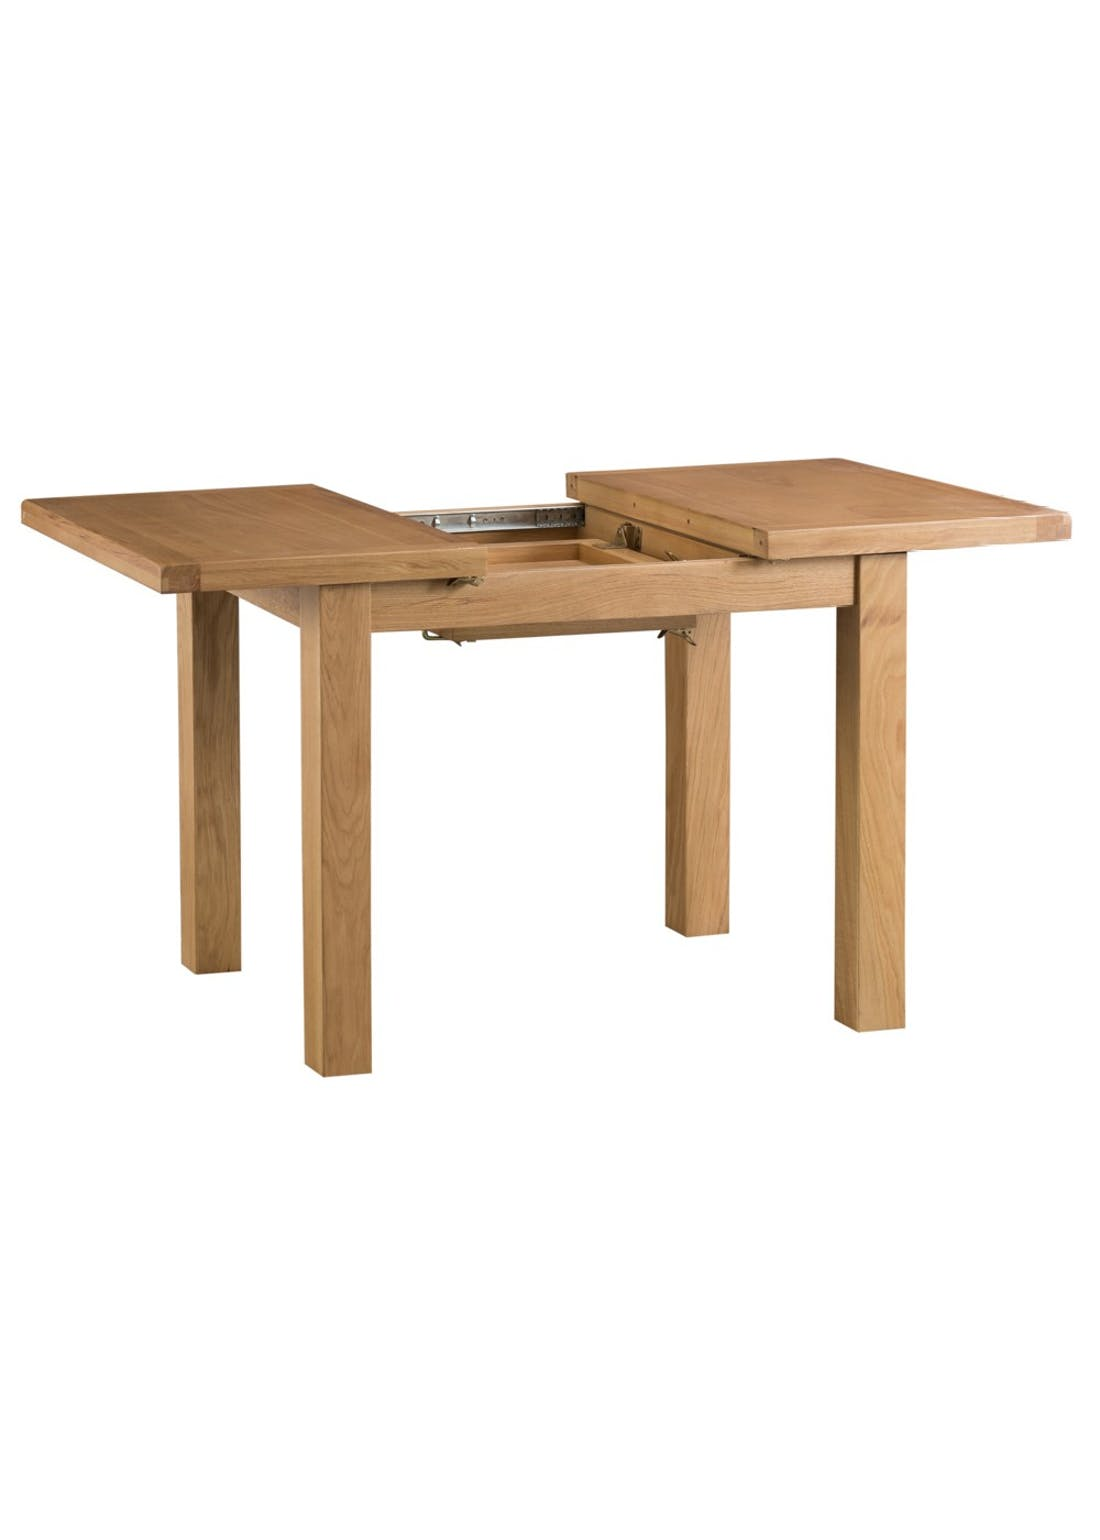 Interiors Direct Coburn Butterfly Extending Table (125cm x 85cm x 78cm)